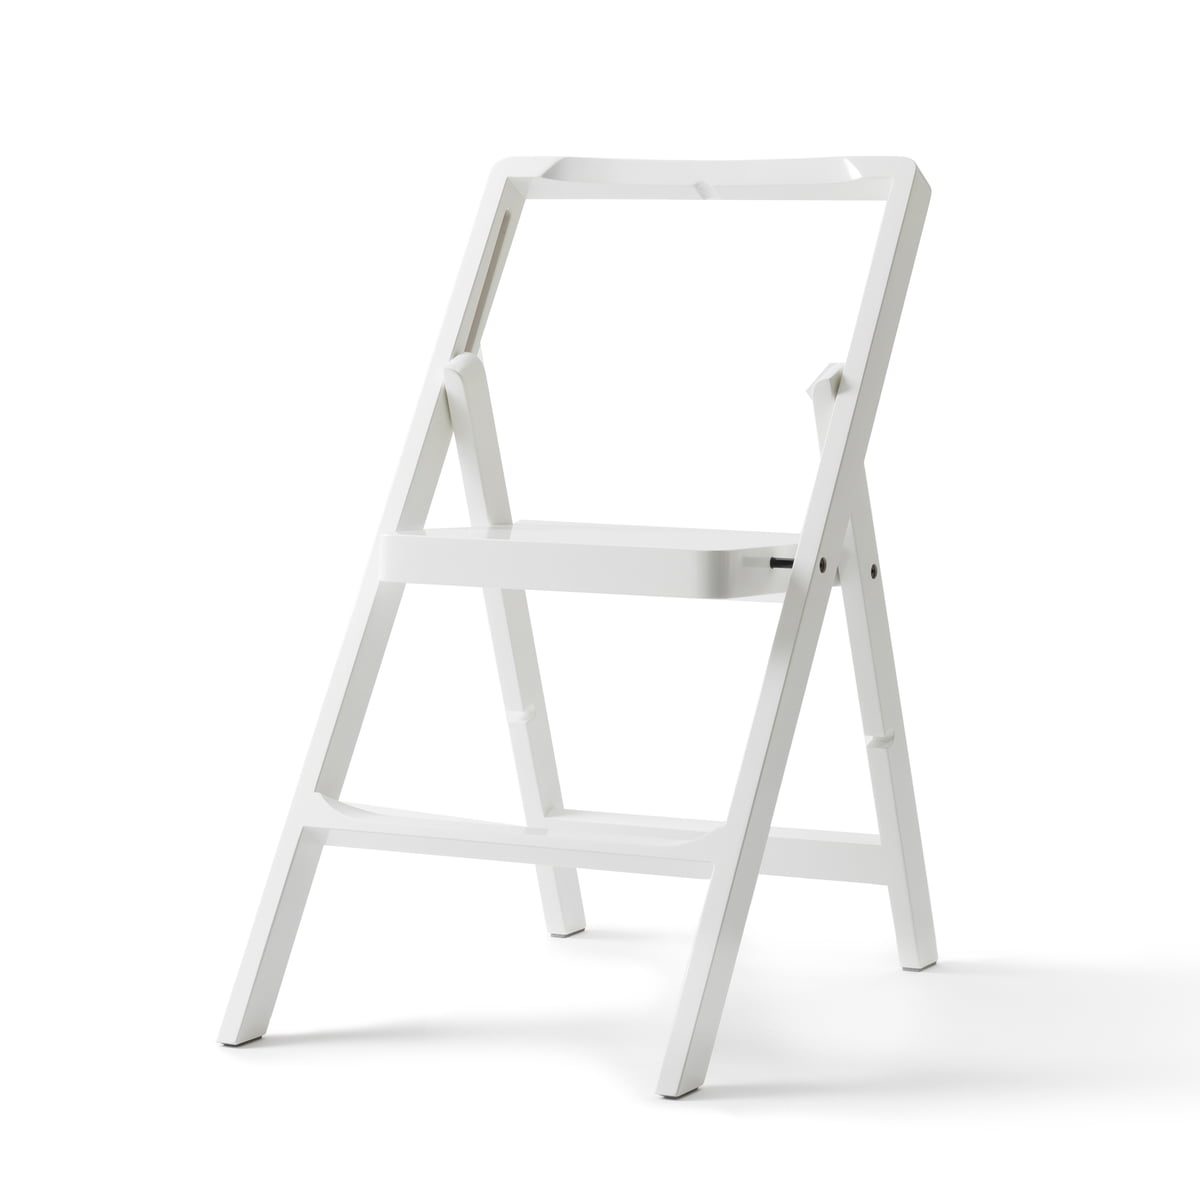 Step Mini Stepladder and Folding Chair Design